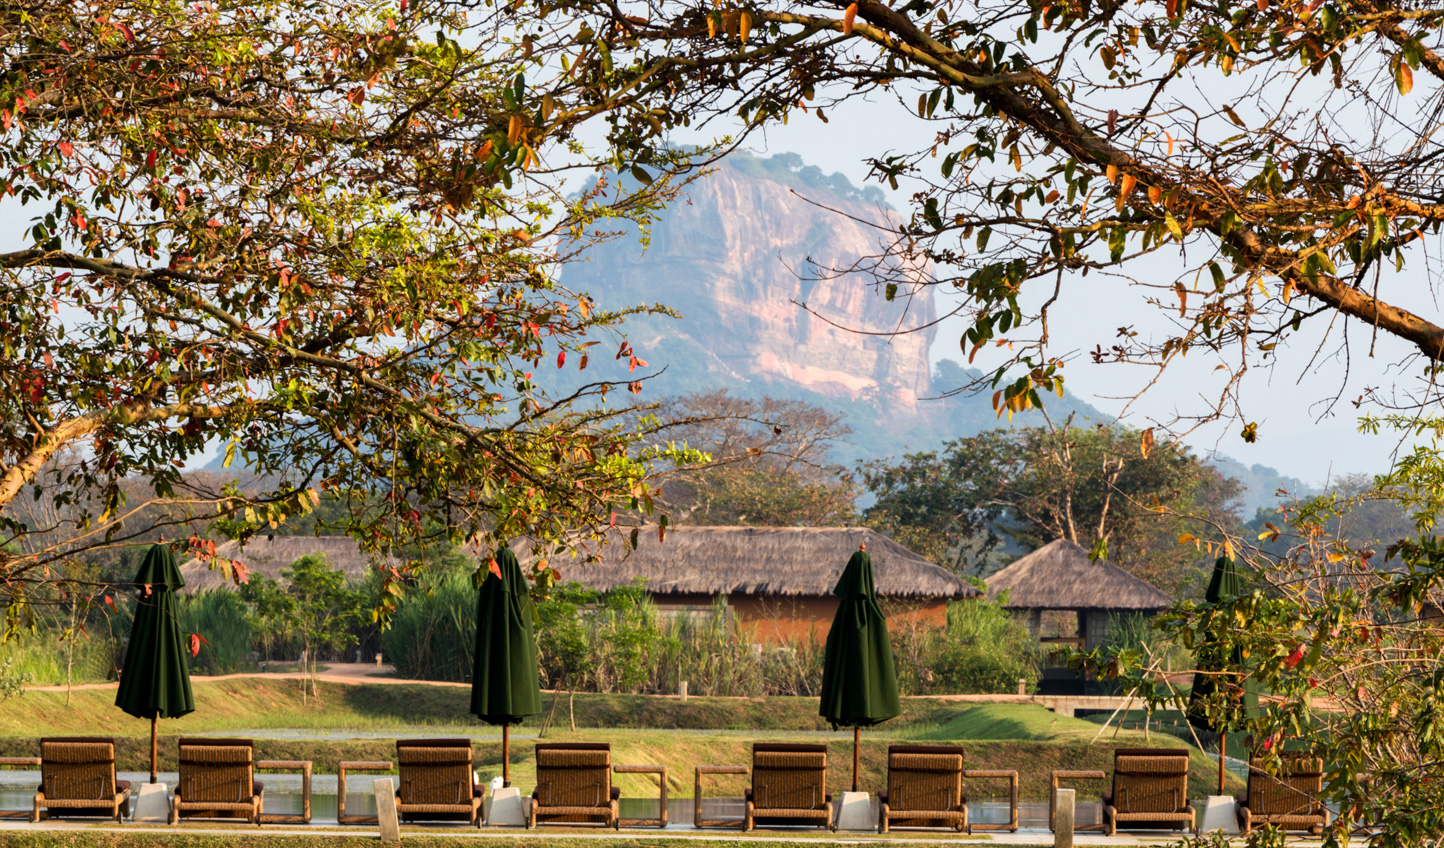 Enjoy uninterrupted views of Sigirya Rock from the comfort of your sunlounger